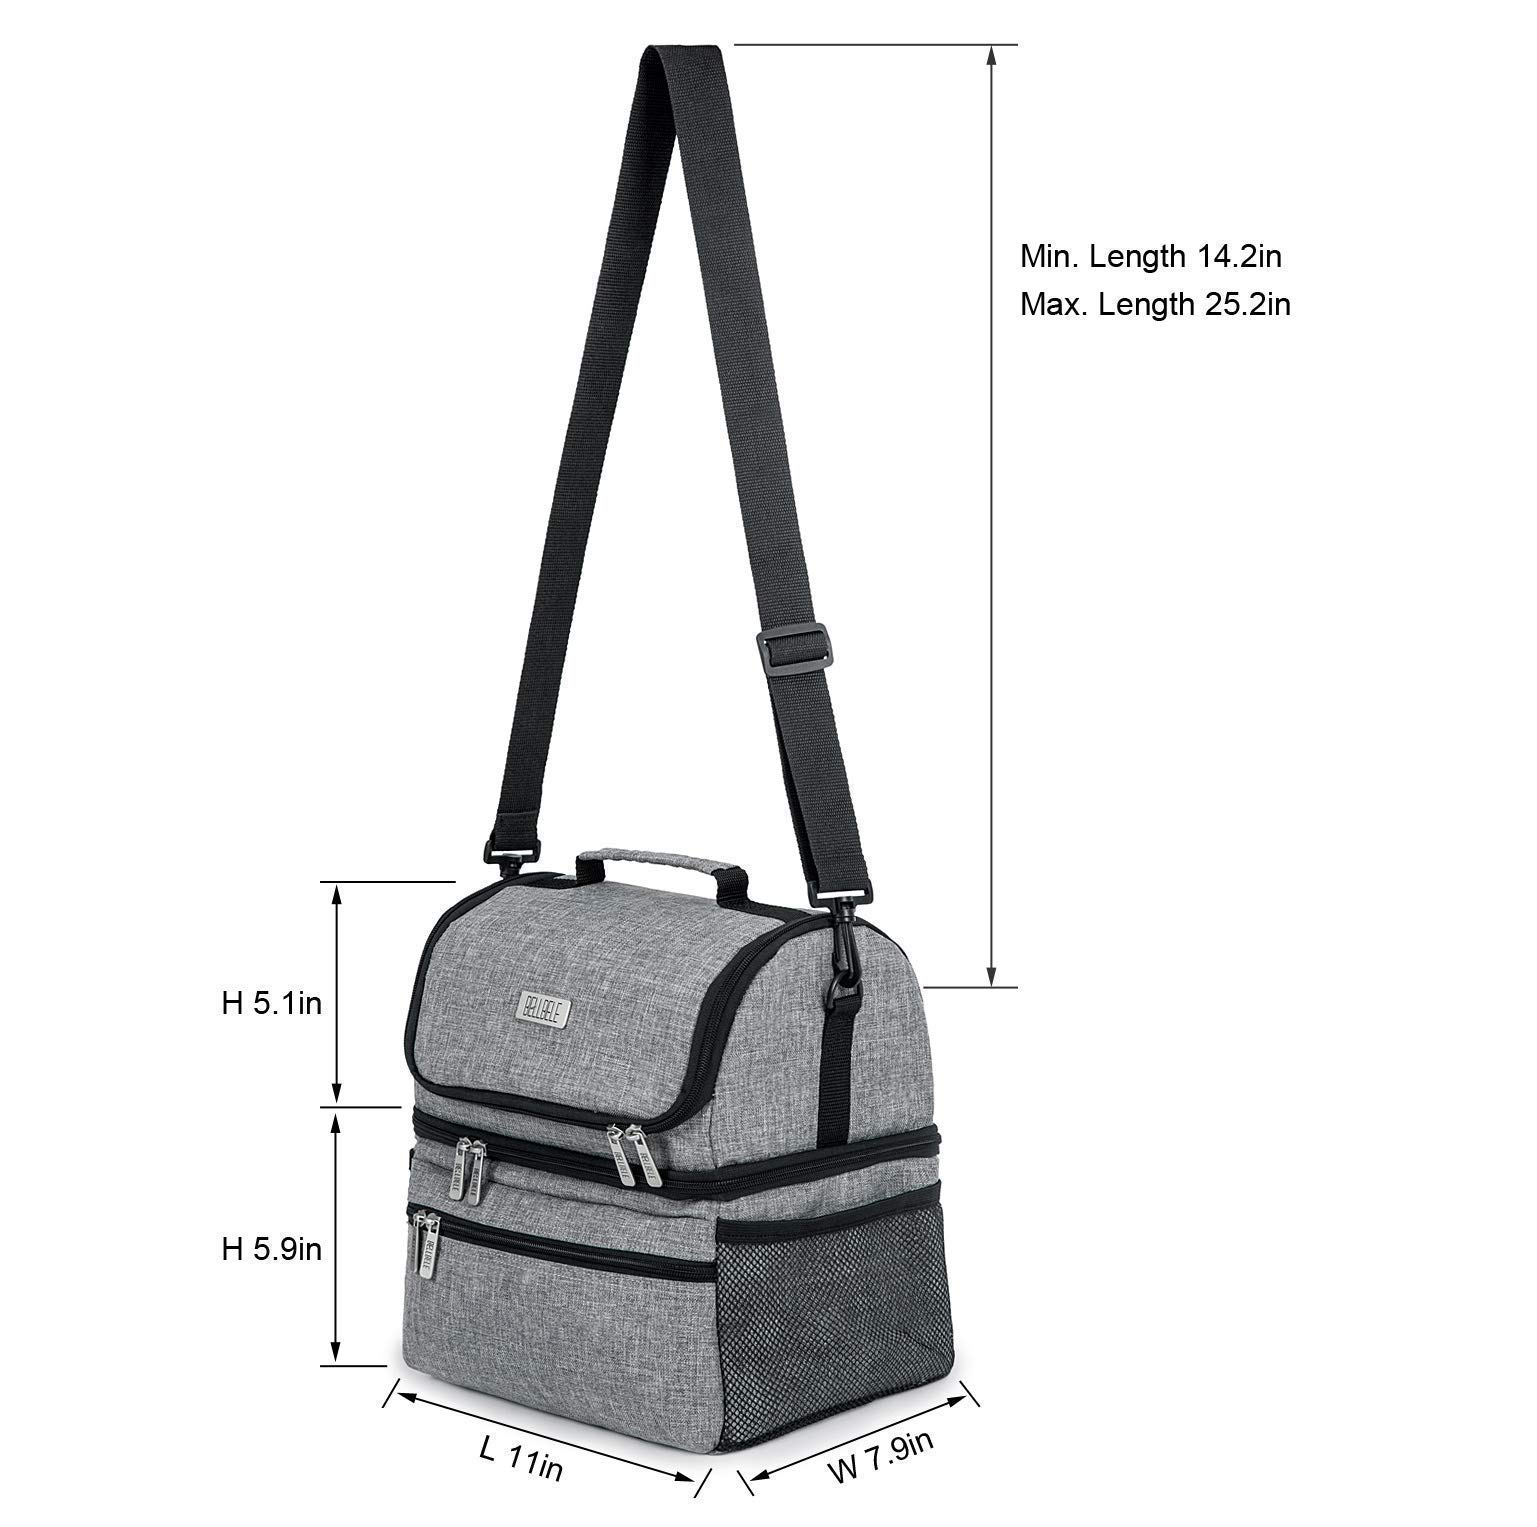 BELLBELE Large Insulated Lunch Bag for Women Lunch Box for Men 15L High Capacity Lunchbox for Family Adult Double Deck Cooler Toe Bag for Office School Picnic Travel or Camping (Gray)